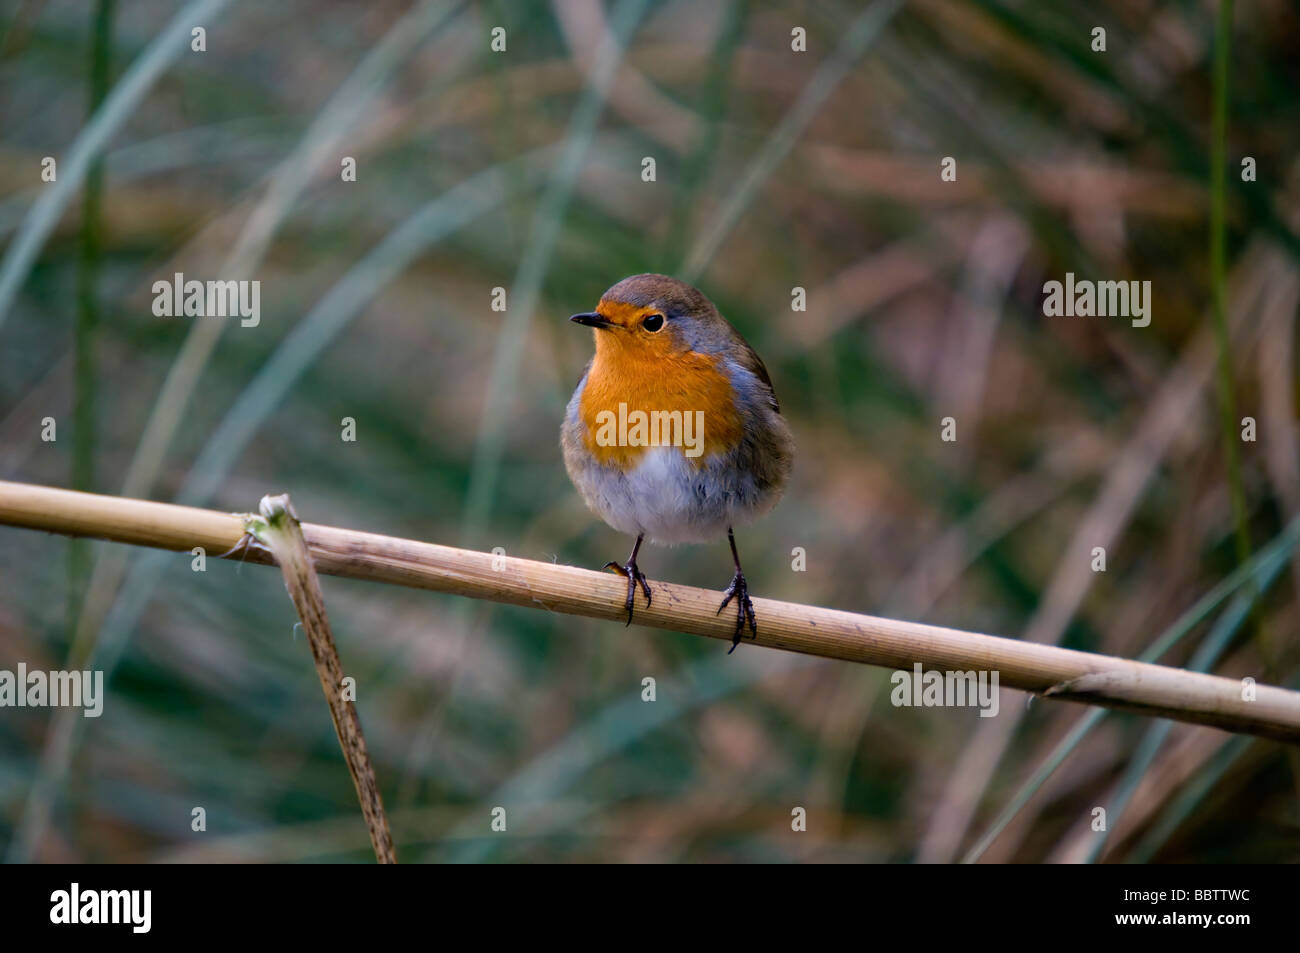 Robin On A Branch (Erithacus rubecula) - Stock Image